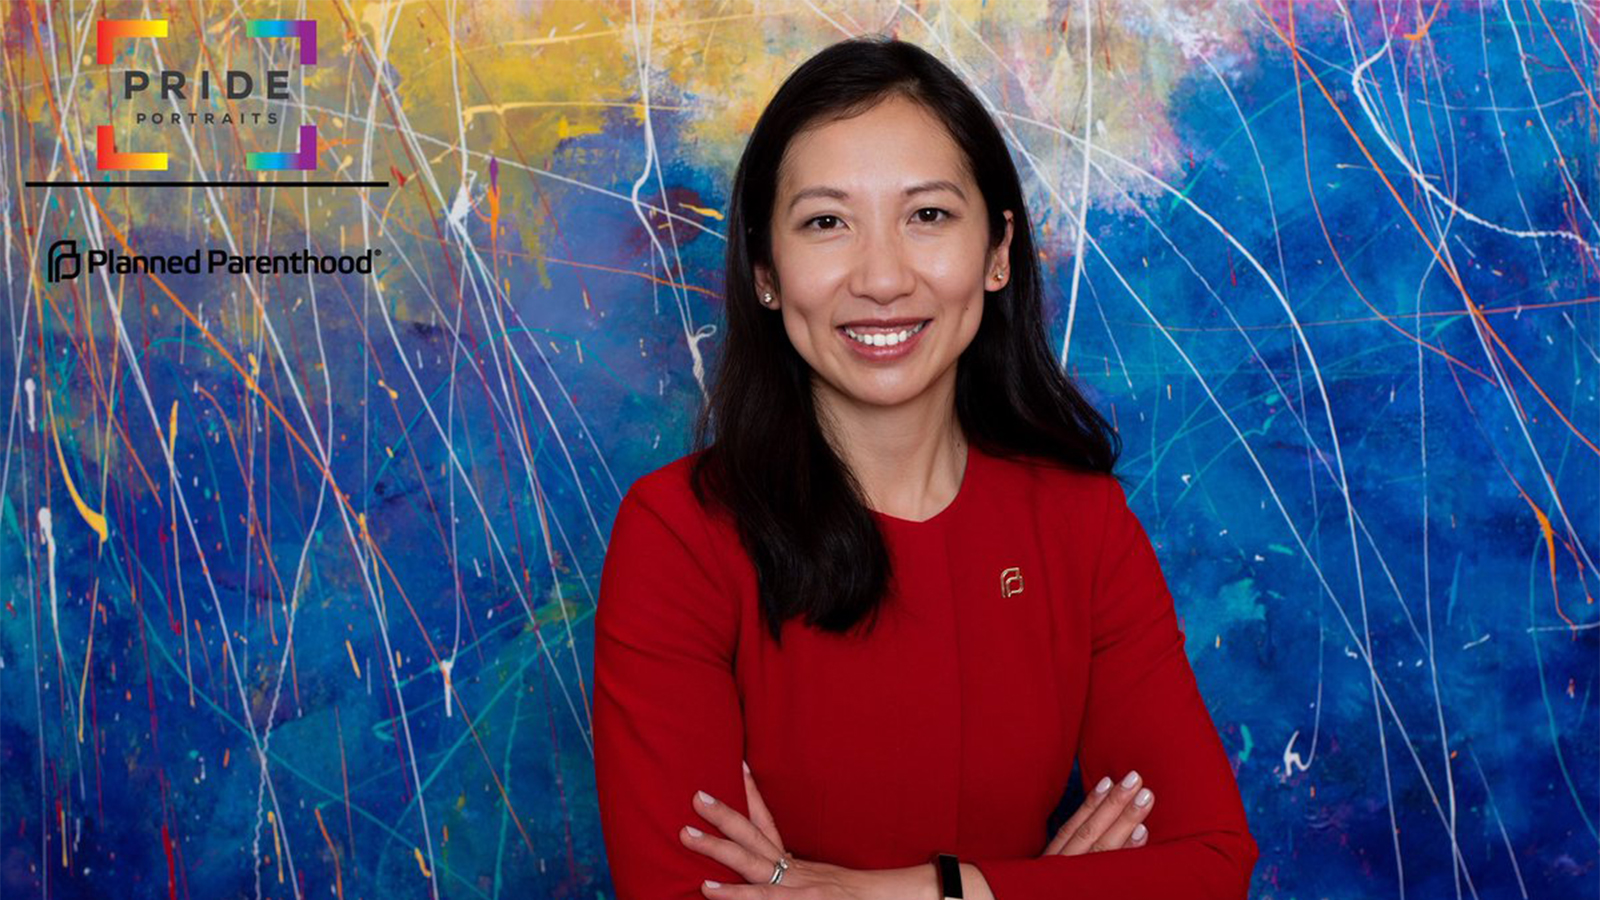 #HRCTwitterTakeover With Planned Parenthood President Dr. Leana Wen